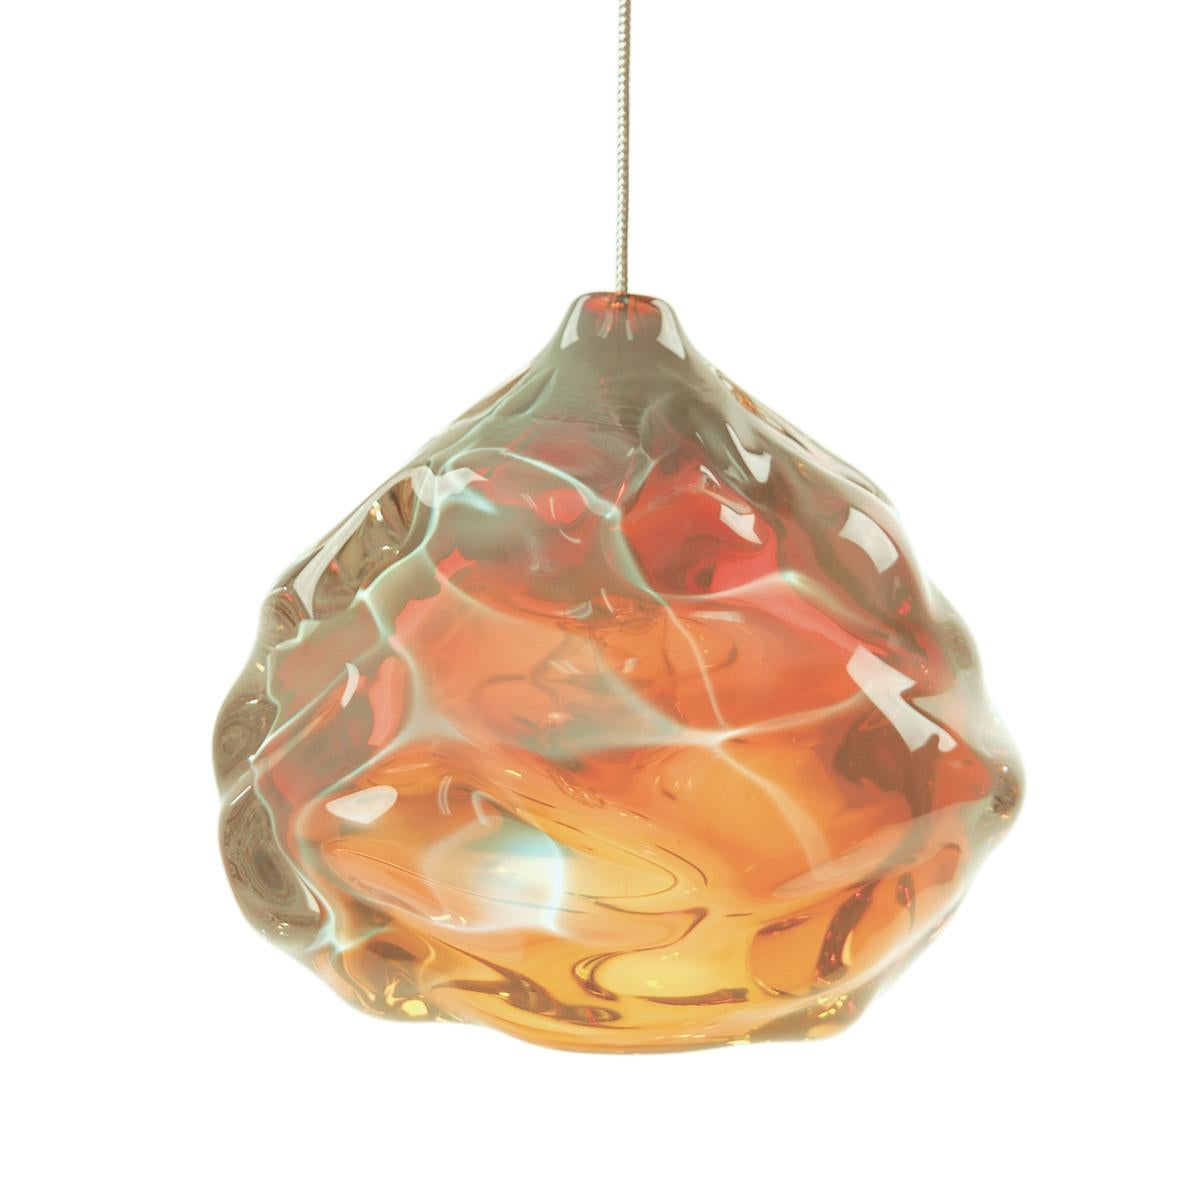 Small Gold Topaz Happy Pendant Light, Hand Blown Glass - Made to Order